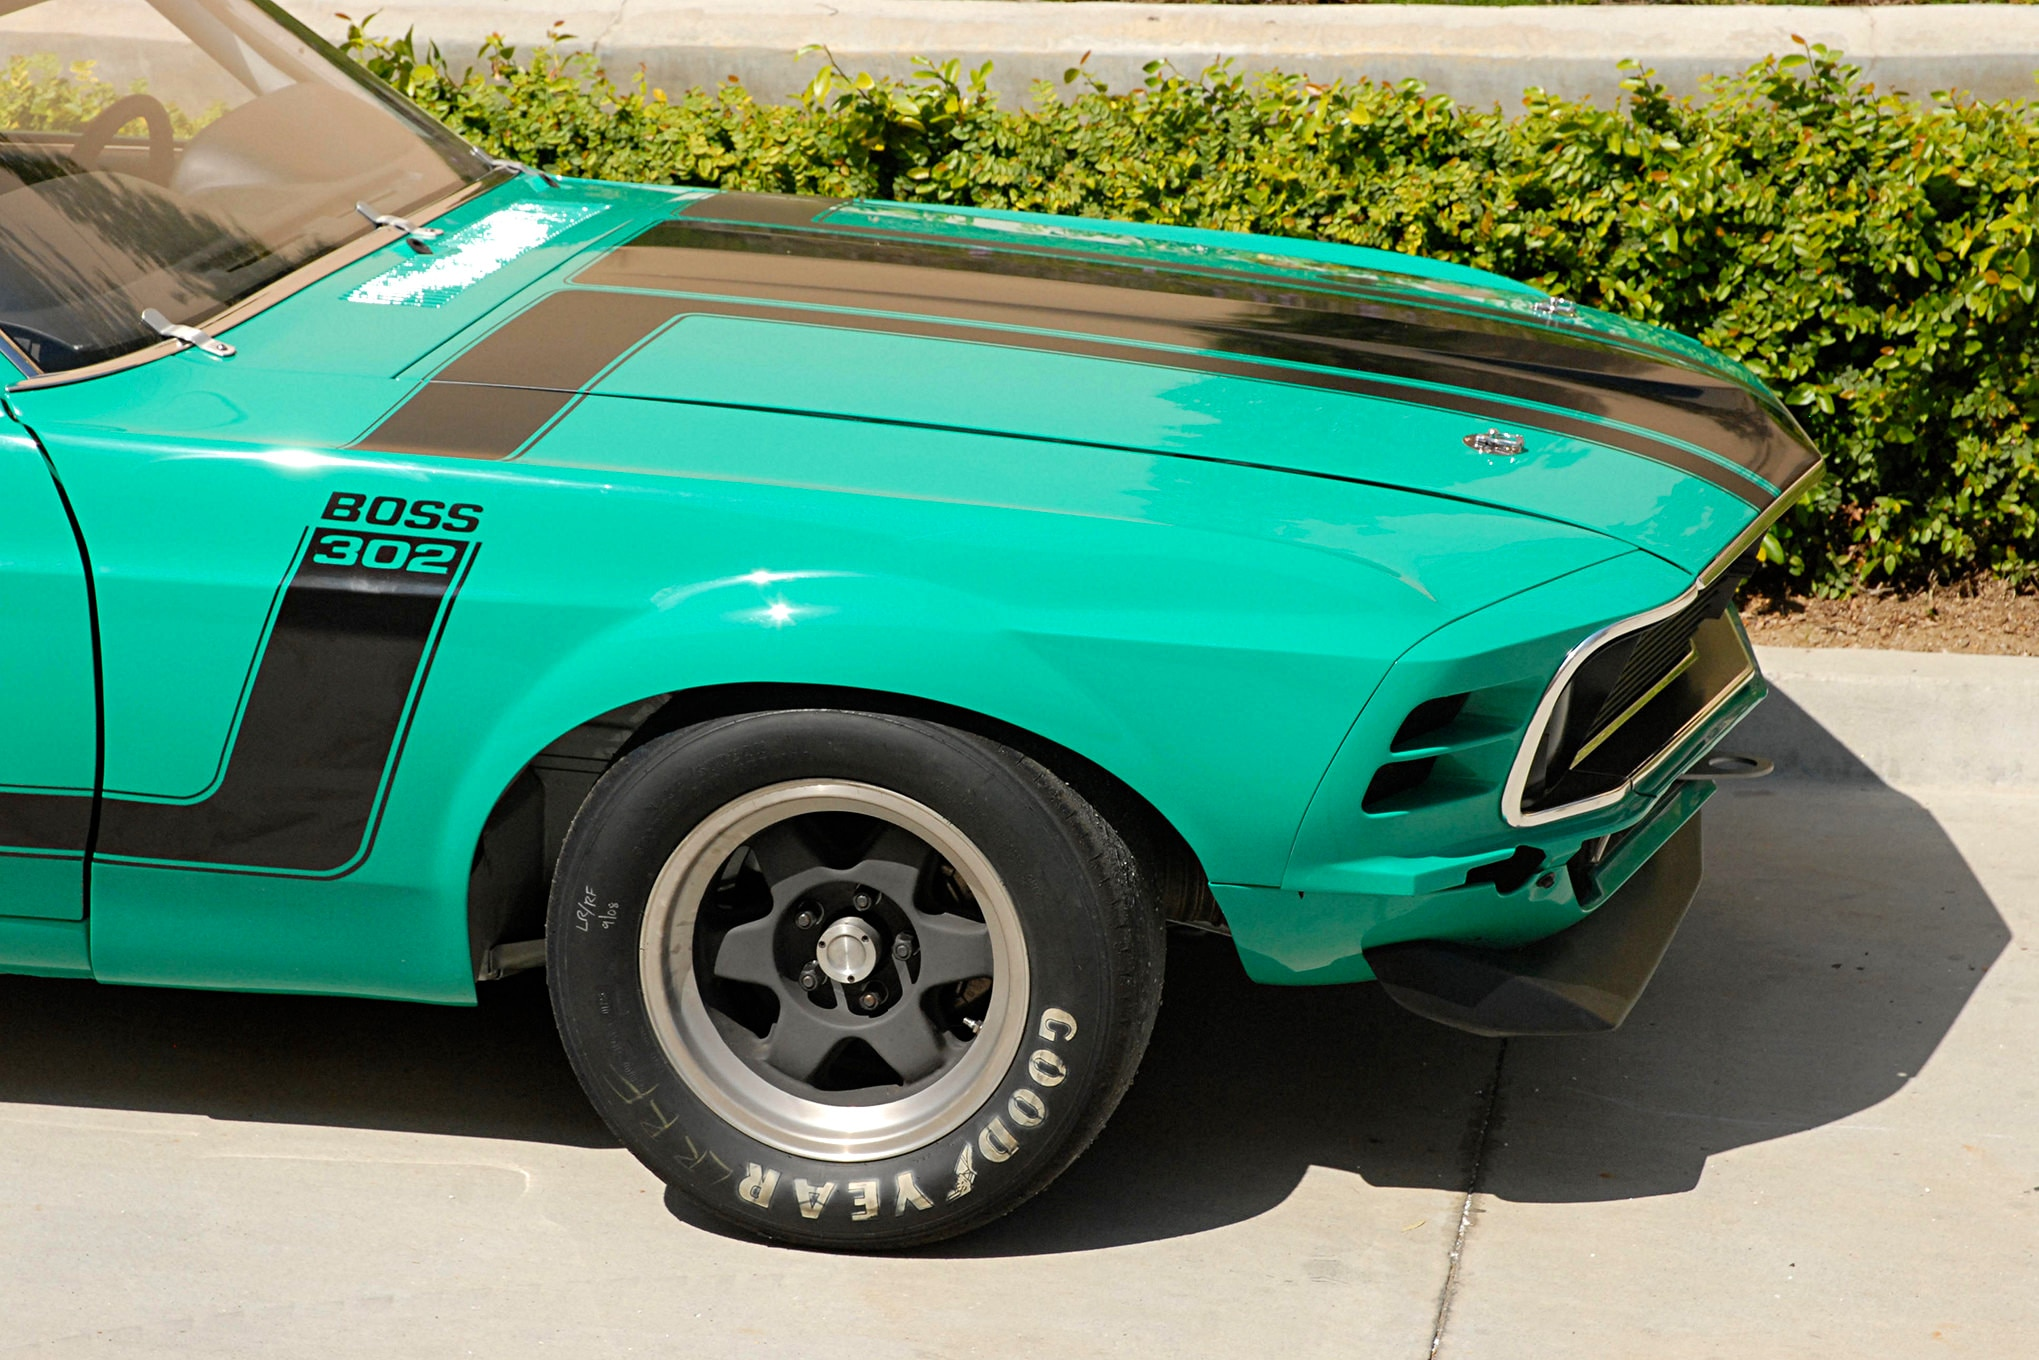 011 Conley 1970 Ford Mustang Boss 302 Front Tire Wheel Detail